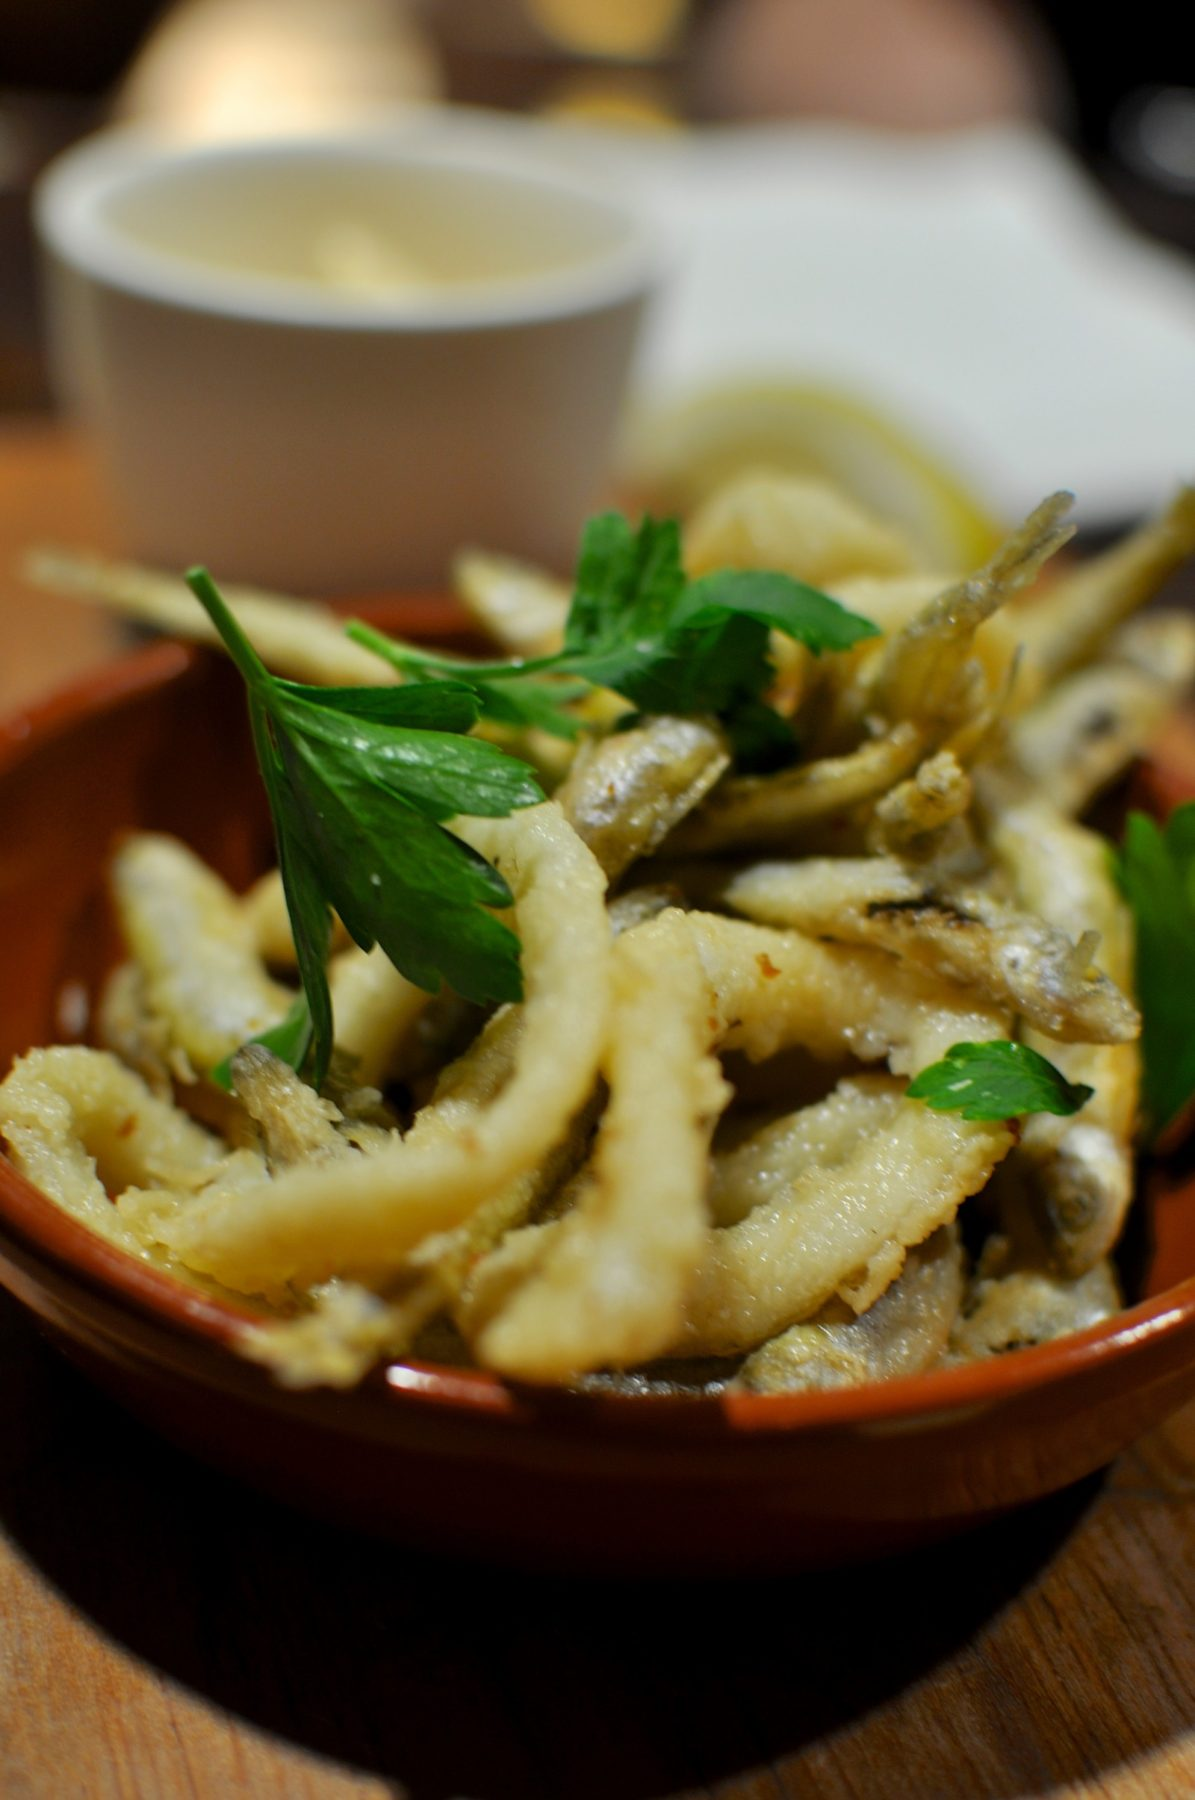 Calamares y chanquetes – crisp fried calamari & whitebait with aioli